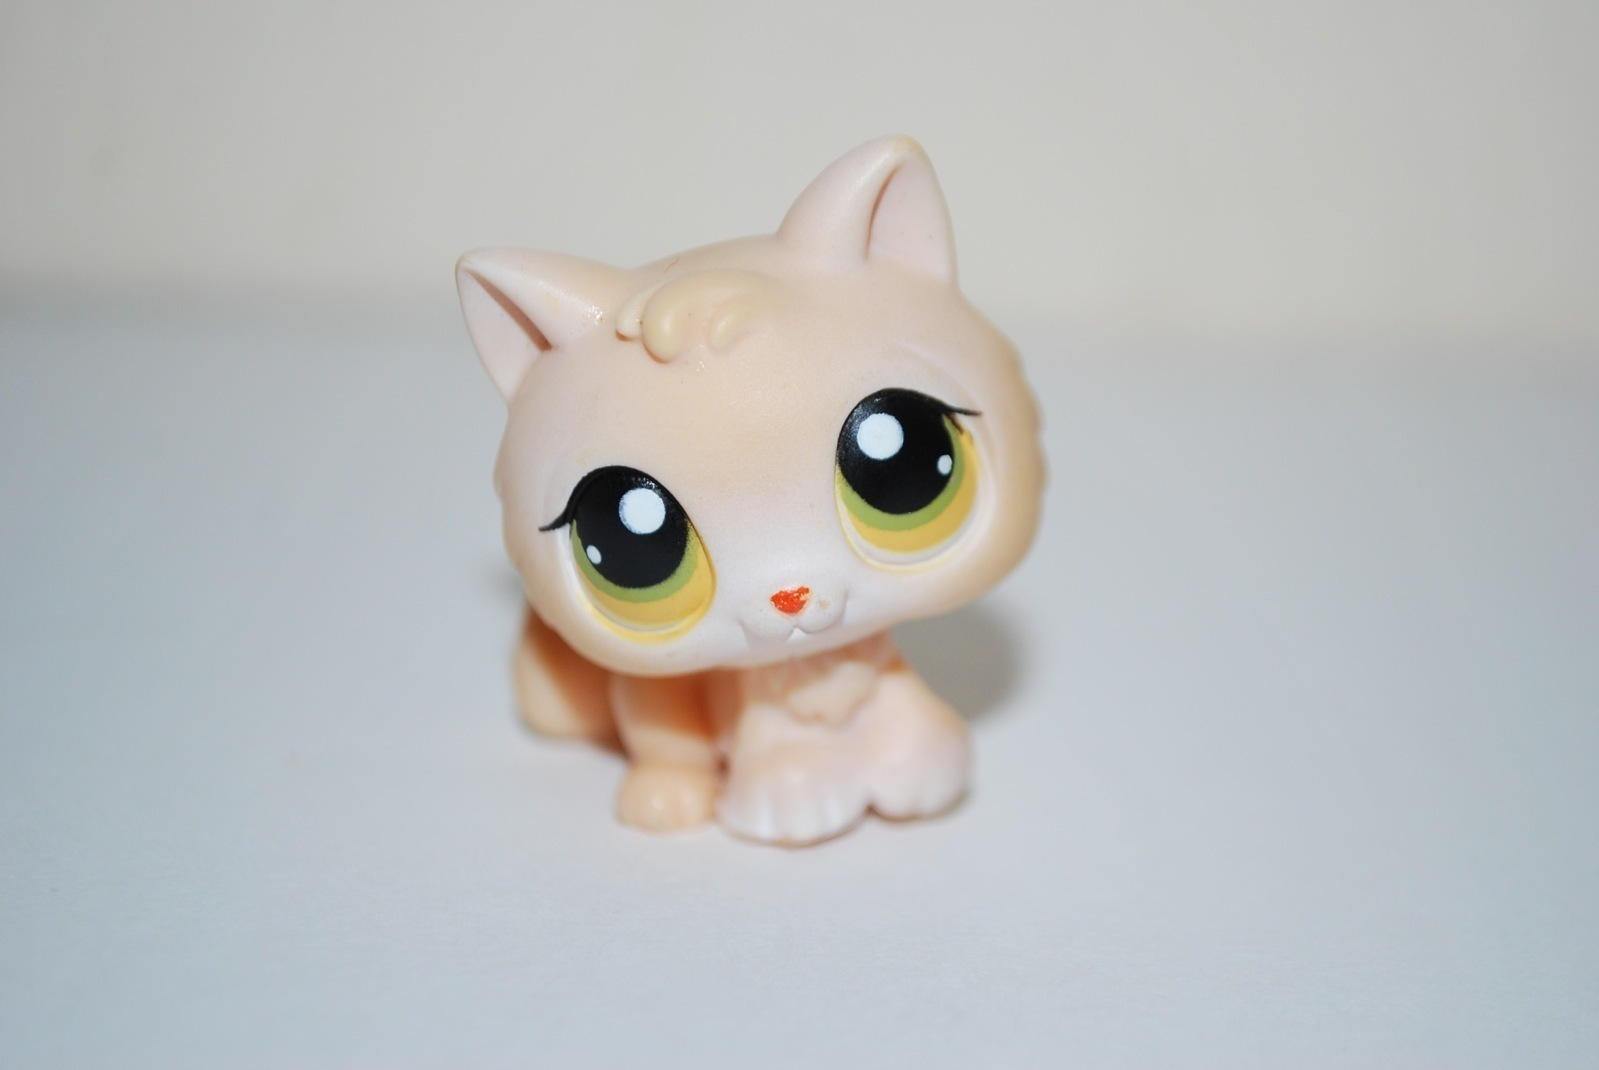 Littlest Pet Shop LPS 293 Peach Cream Cat And 50 Similar Items